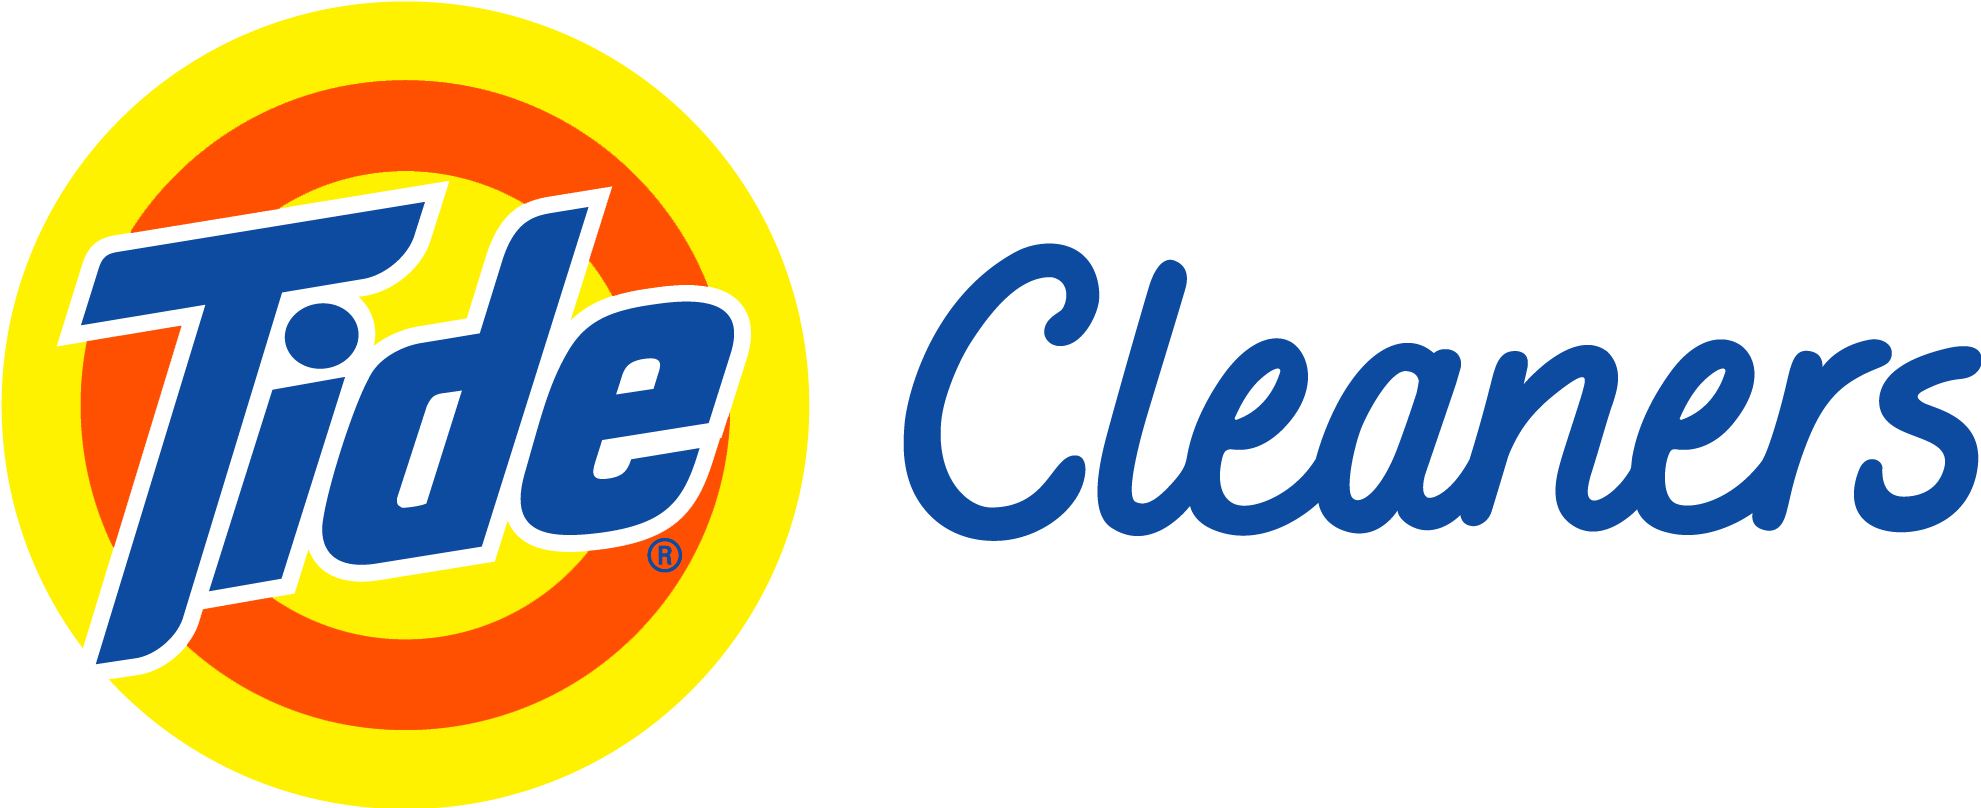 TIDE DRY CLEANERS NOW OFFERS FREE TWICE A WEEK PICK-UP AND DELIVERY.